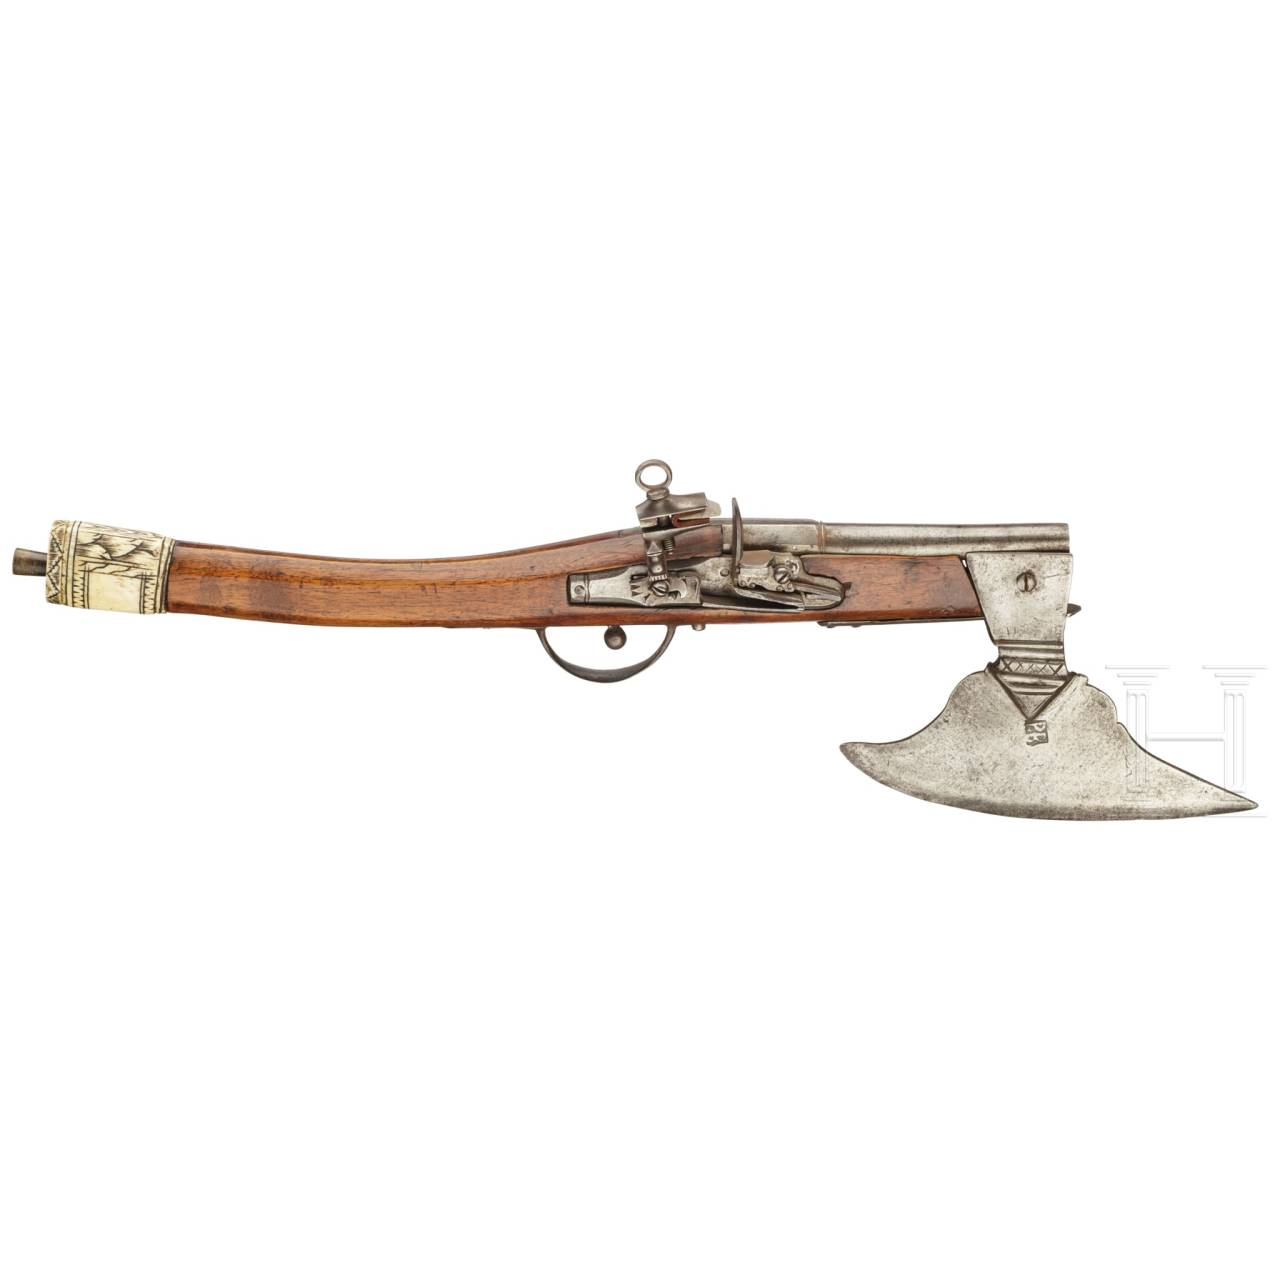 A rare battle axe with integrated flintlock pistol, probably Saxony, 18th century